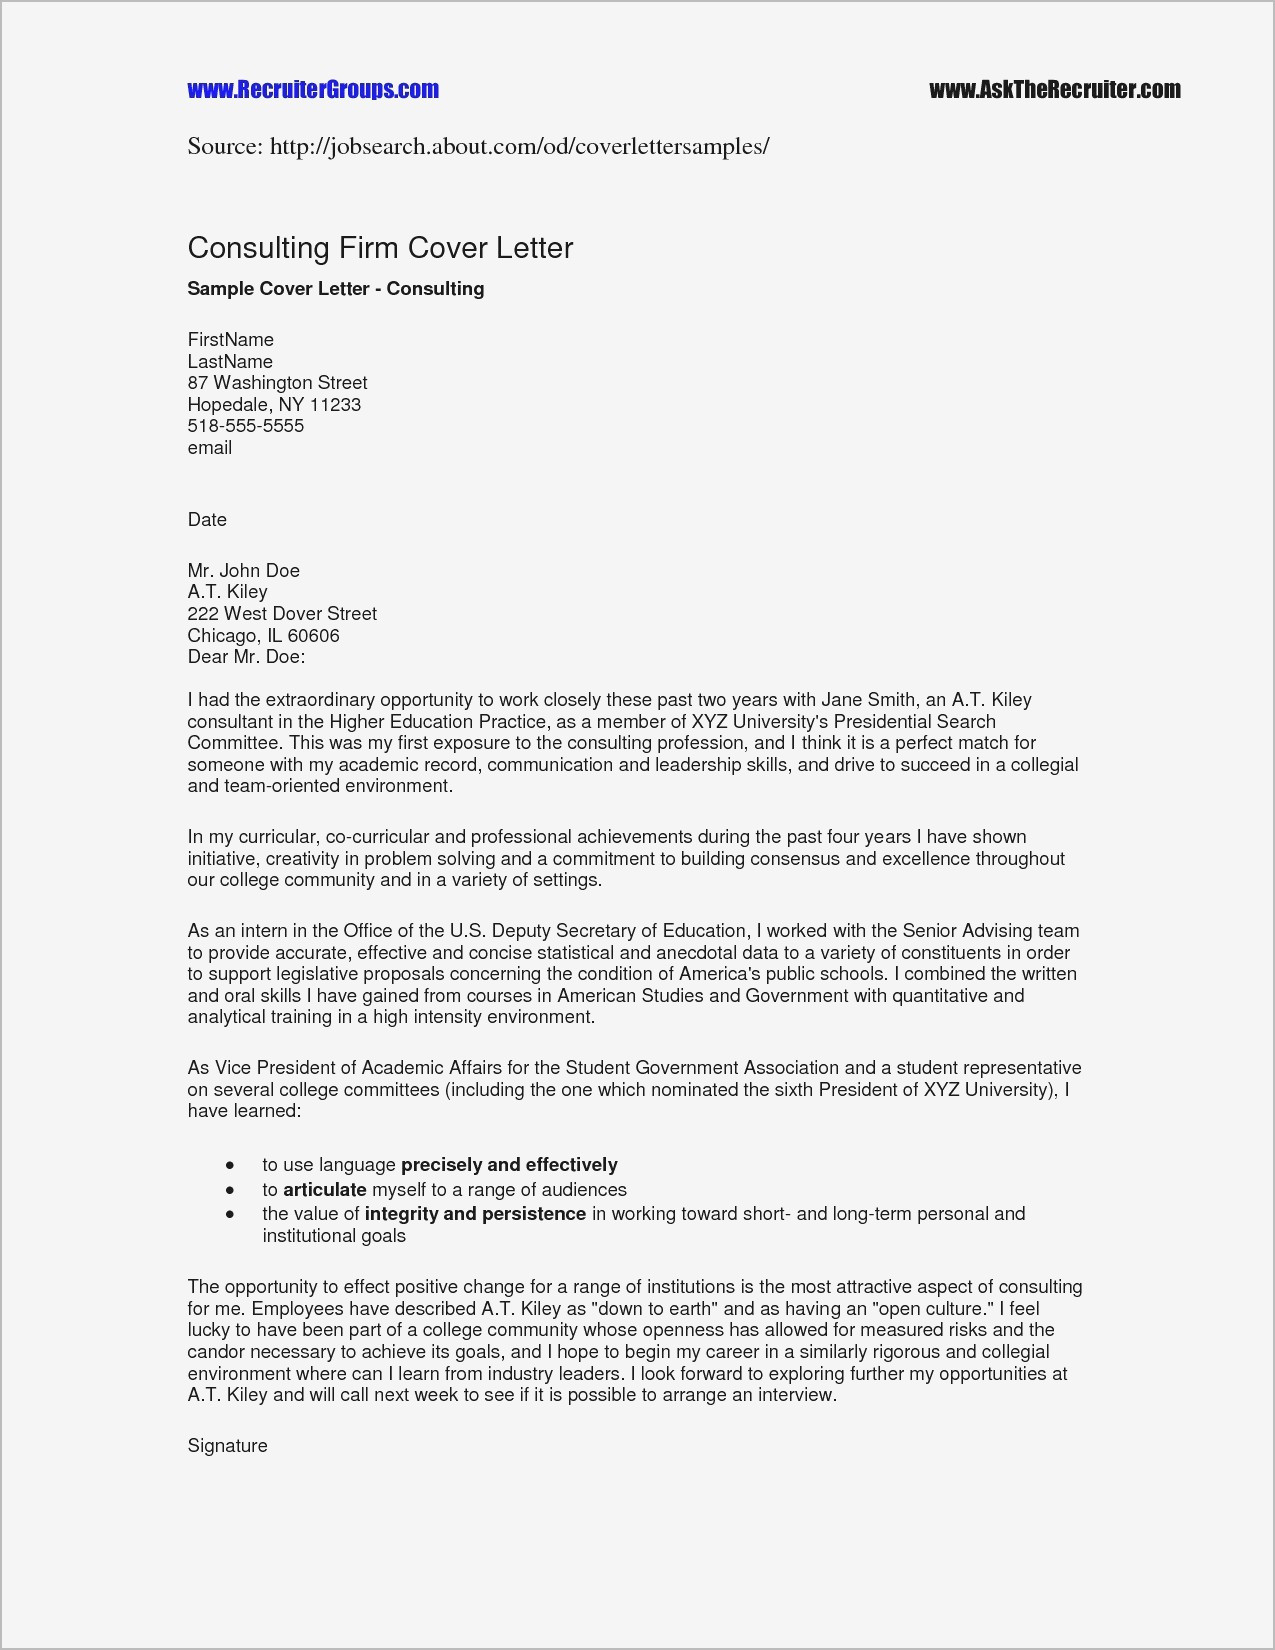 leadership letter of recommendation template Collection-Leadership Re mendation Letter Lovely Letter Re Mendation Template Word Samples 10-j